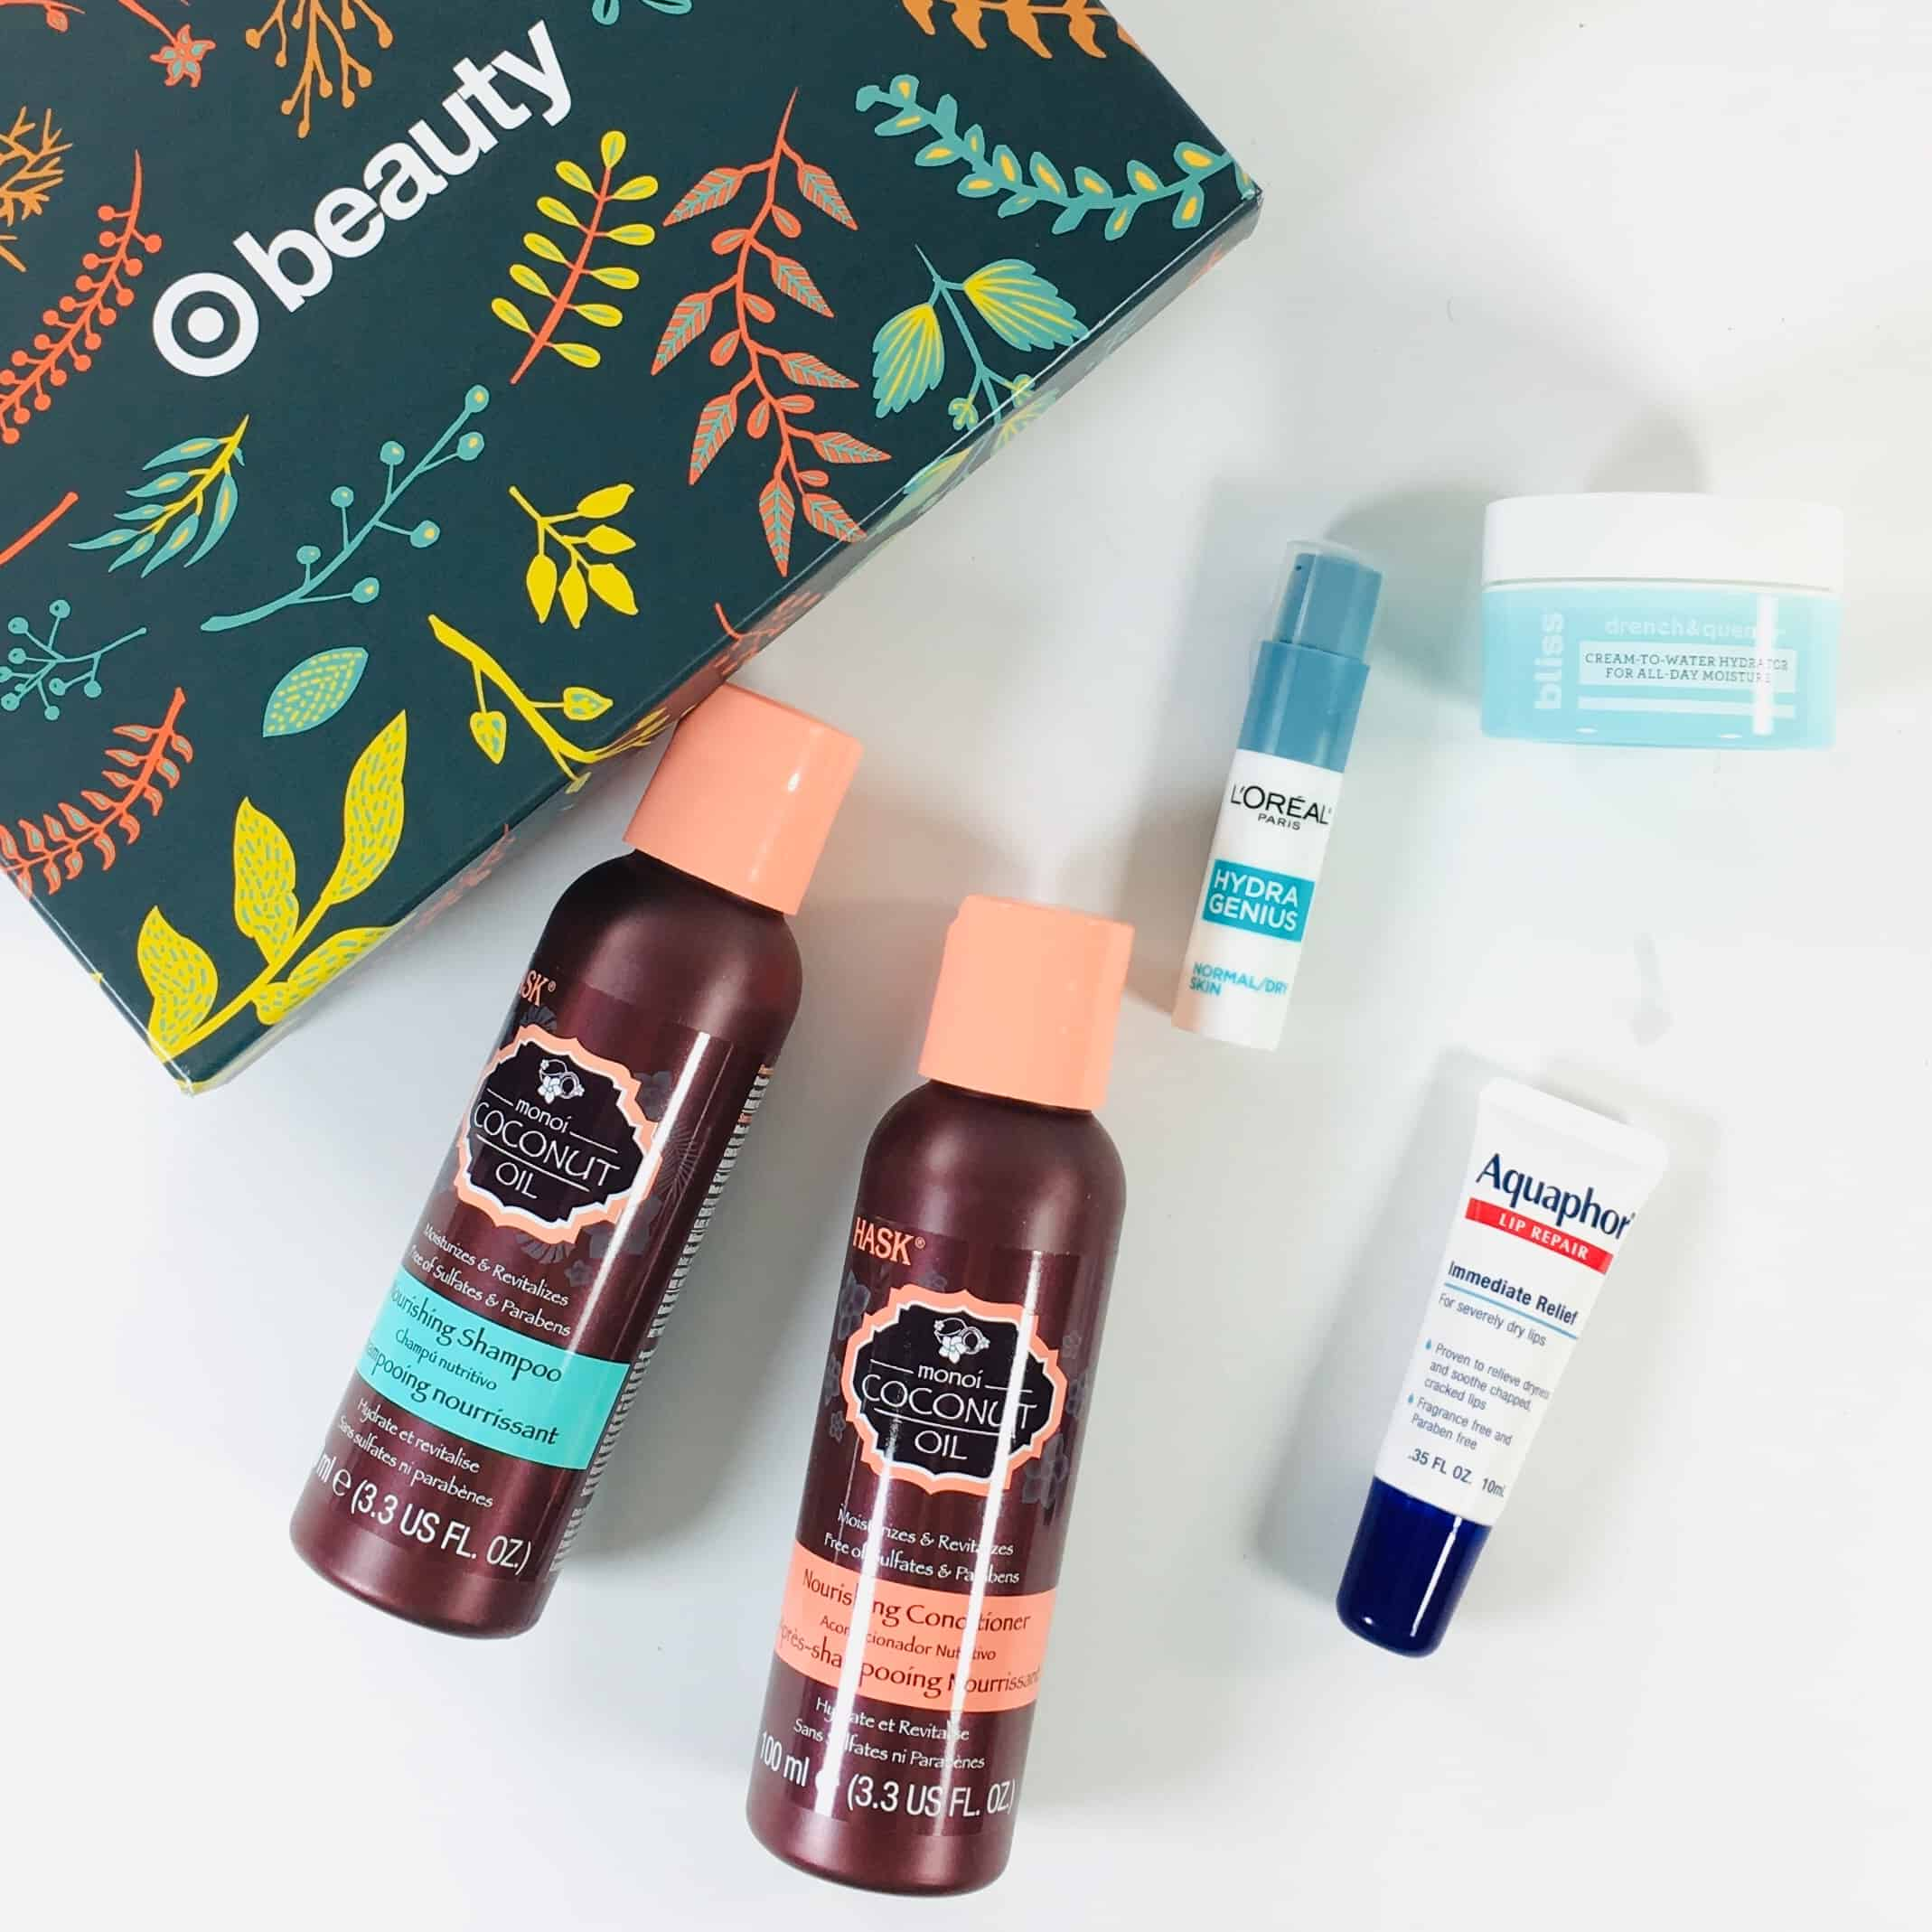 Target Beauty Box Review November 2018 - HELLO HYDRATION